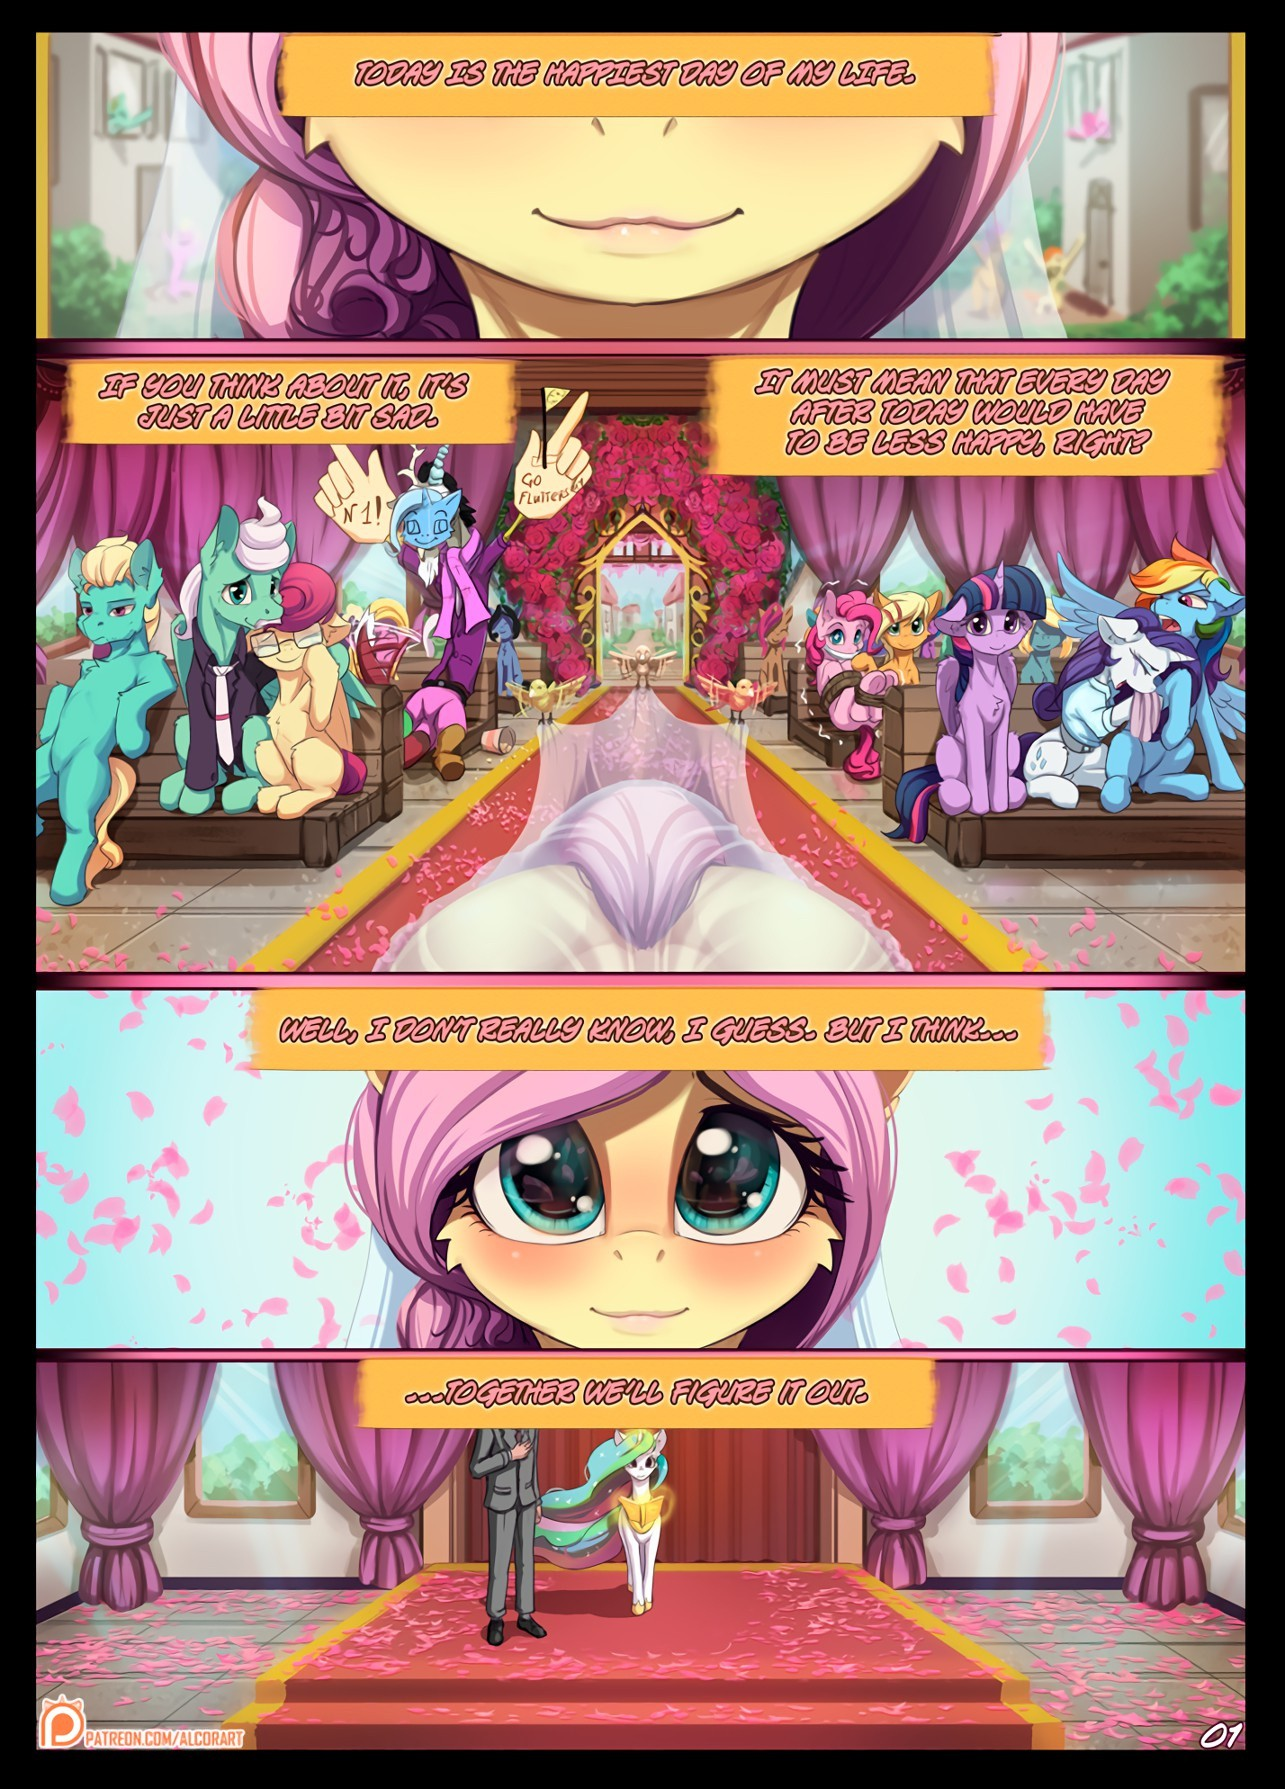 Hearts Aflutter porn comic page 01 on category My Little Pony